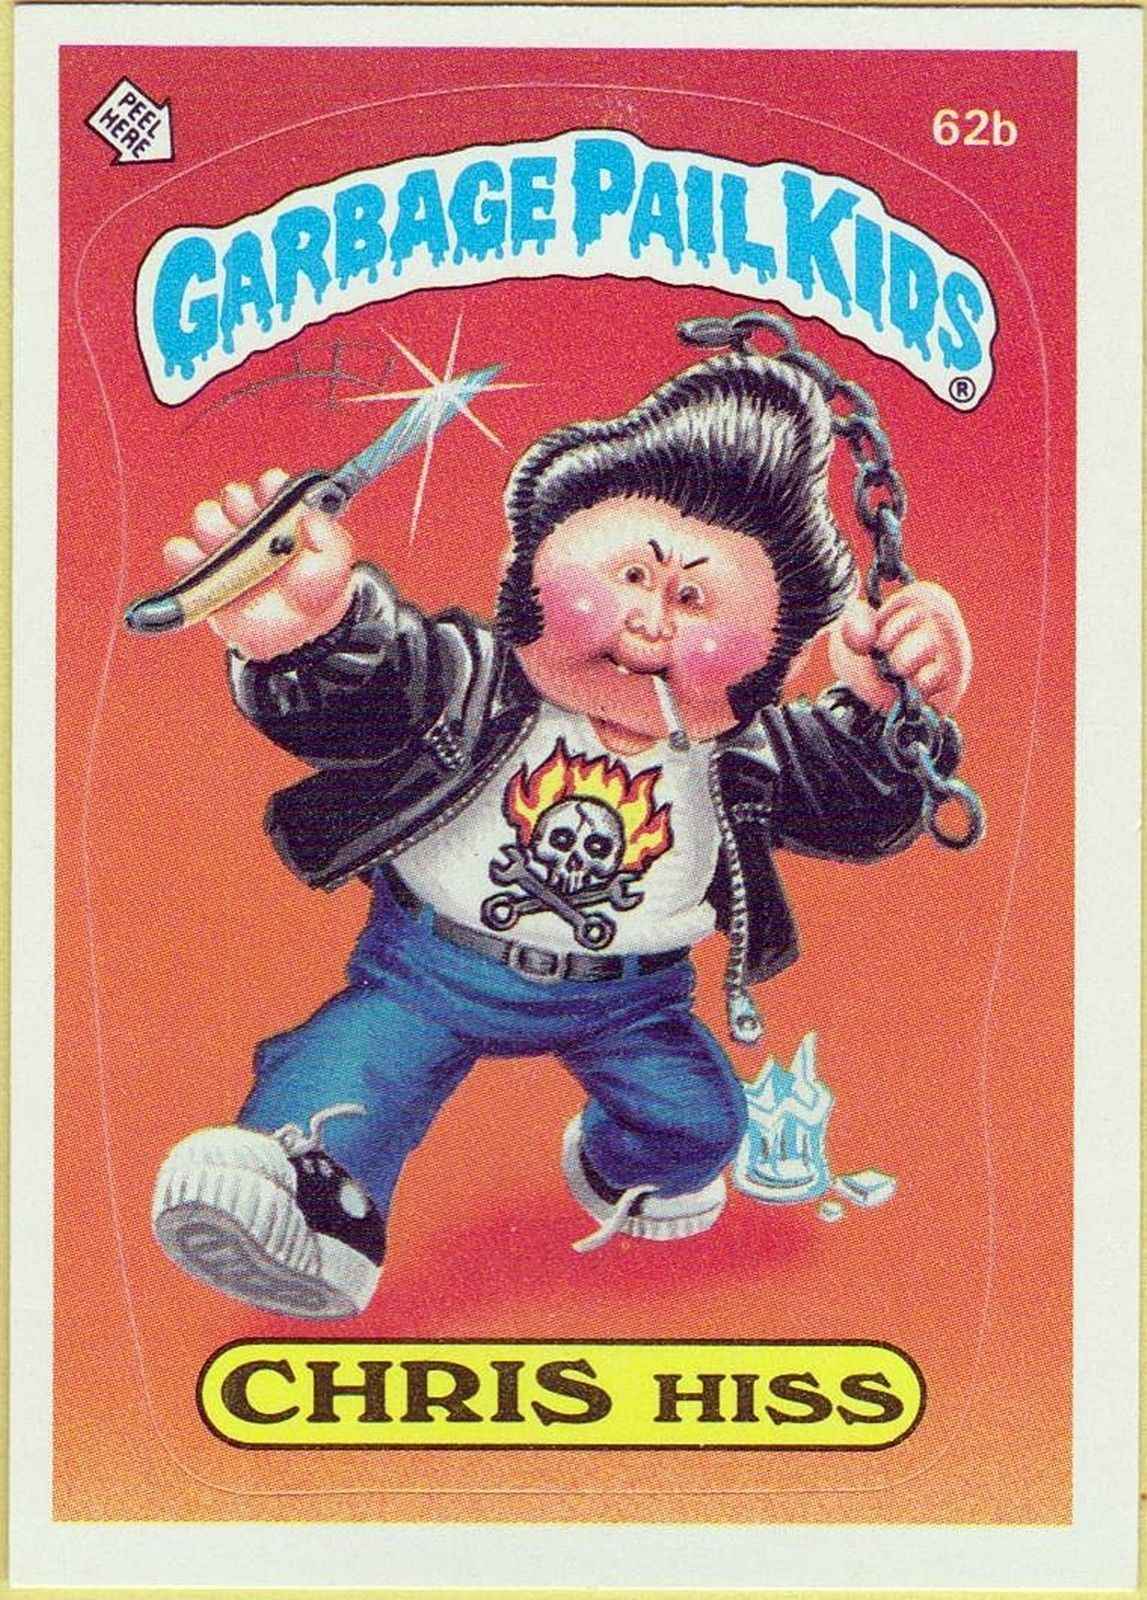 Garbage Pail Kids Friday Night 7 Eleven Purchases In The Summer With The Brothers Les Crados Dessins Effrayants Enfance